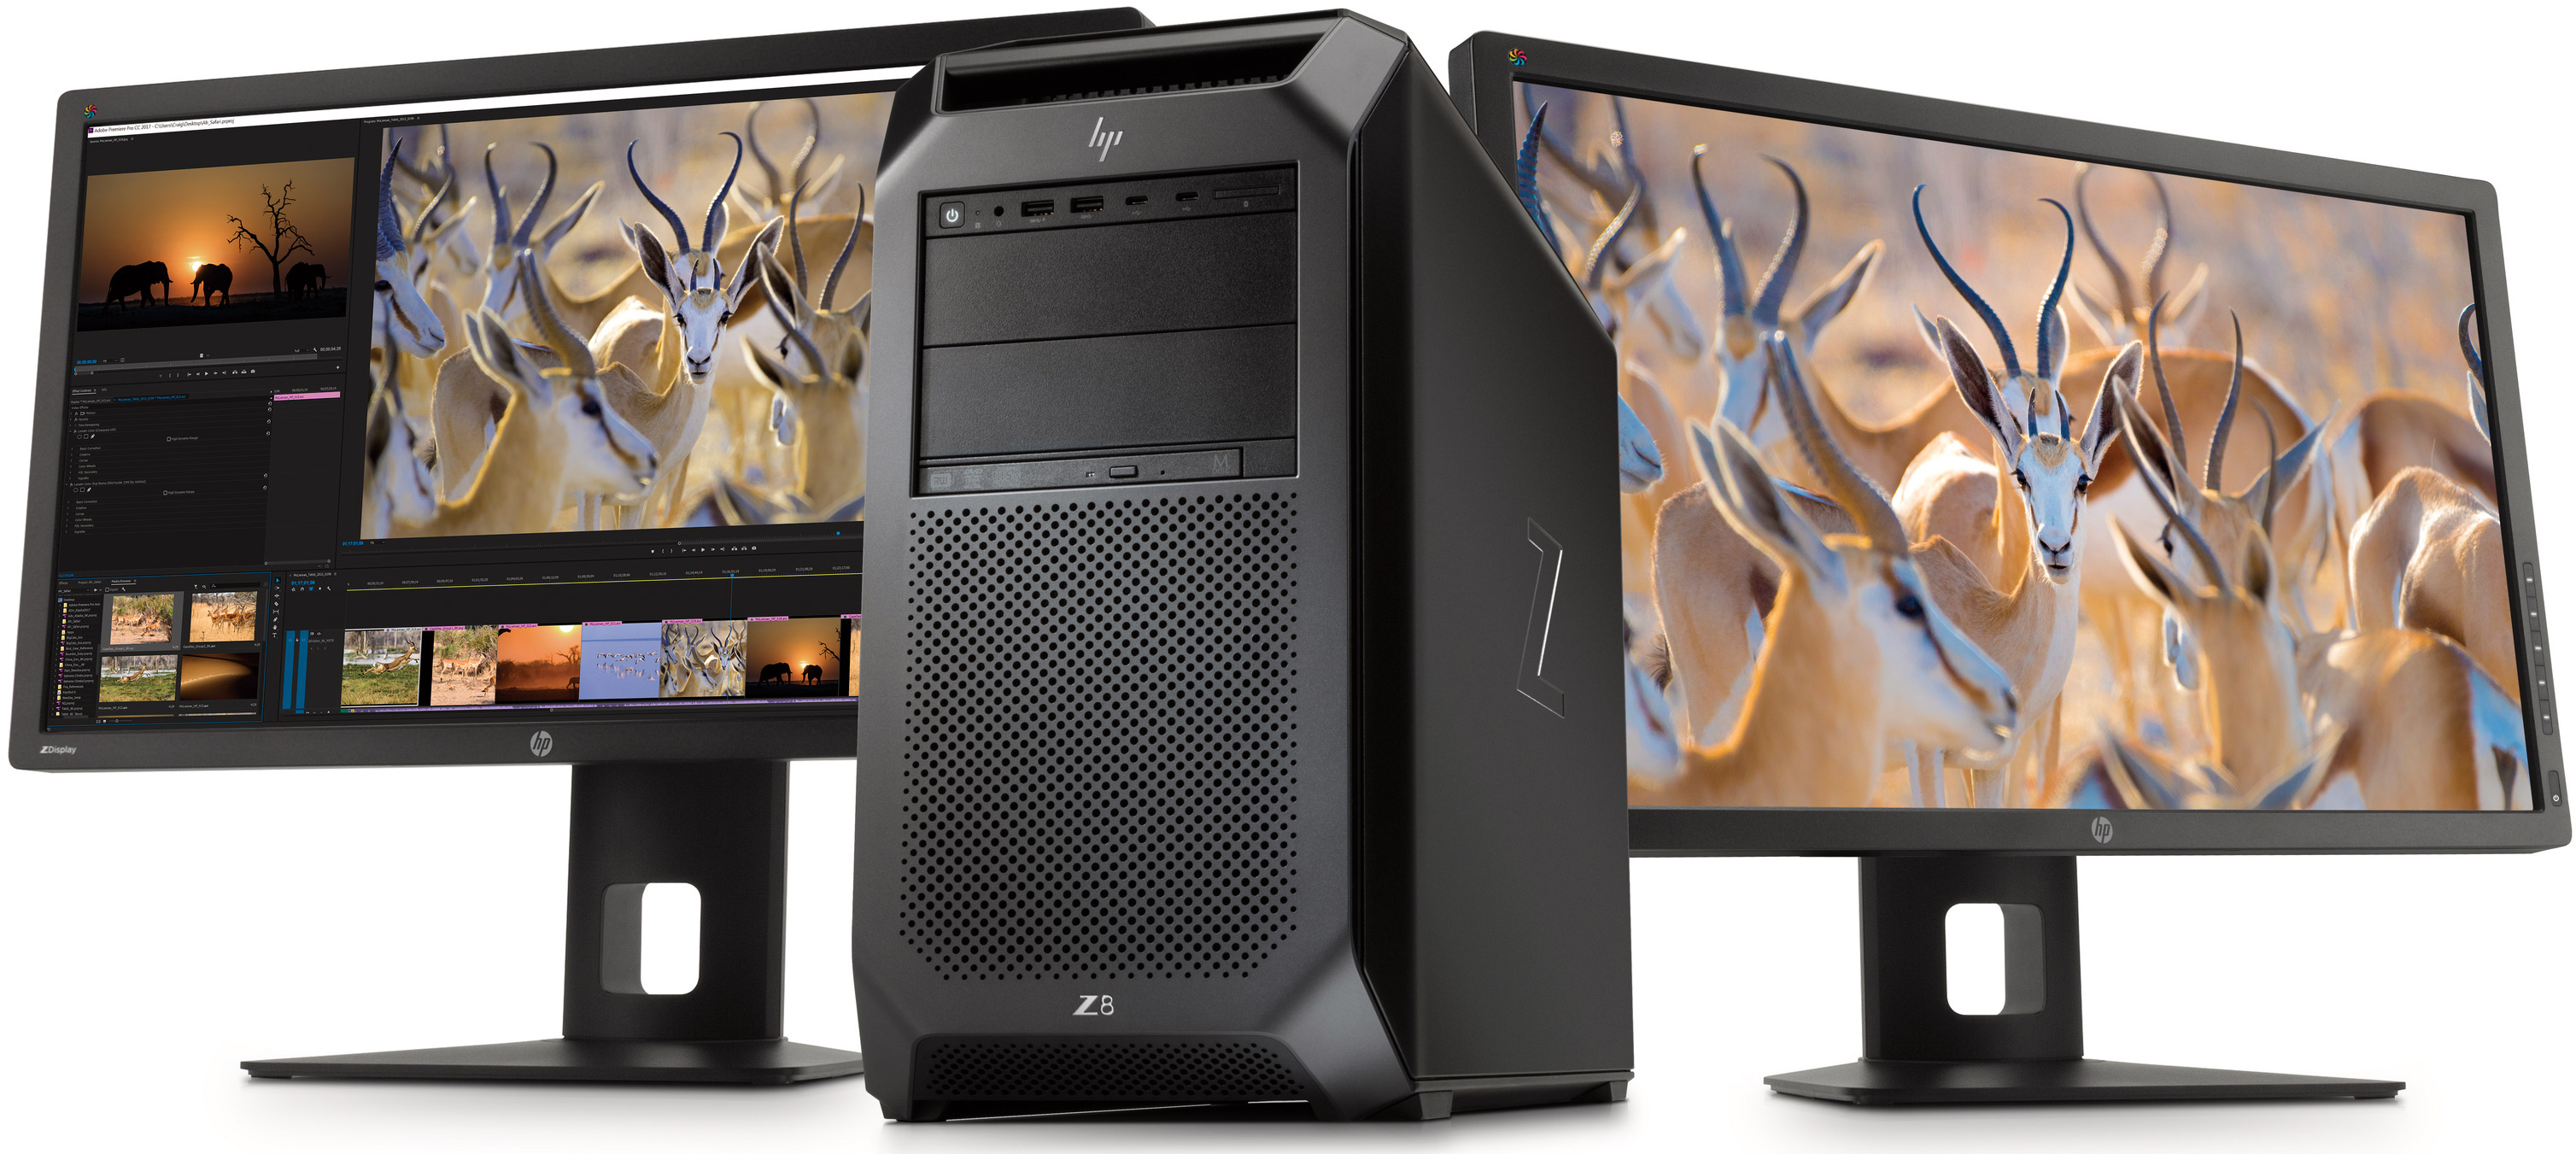 HP Updates Z8 Workstations: Up to 56 Cores, 3 TB RAM, 9 PCIe Slots